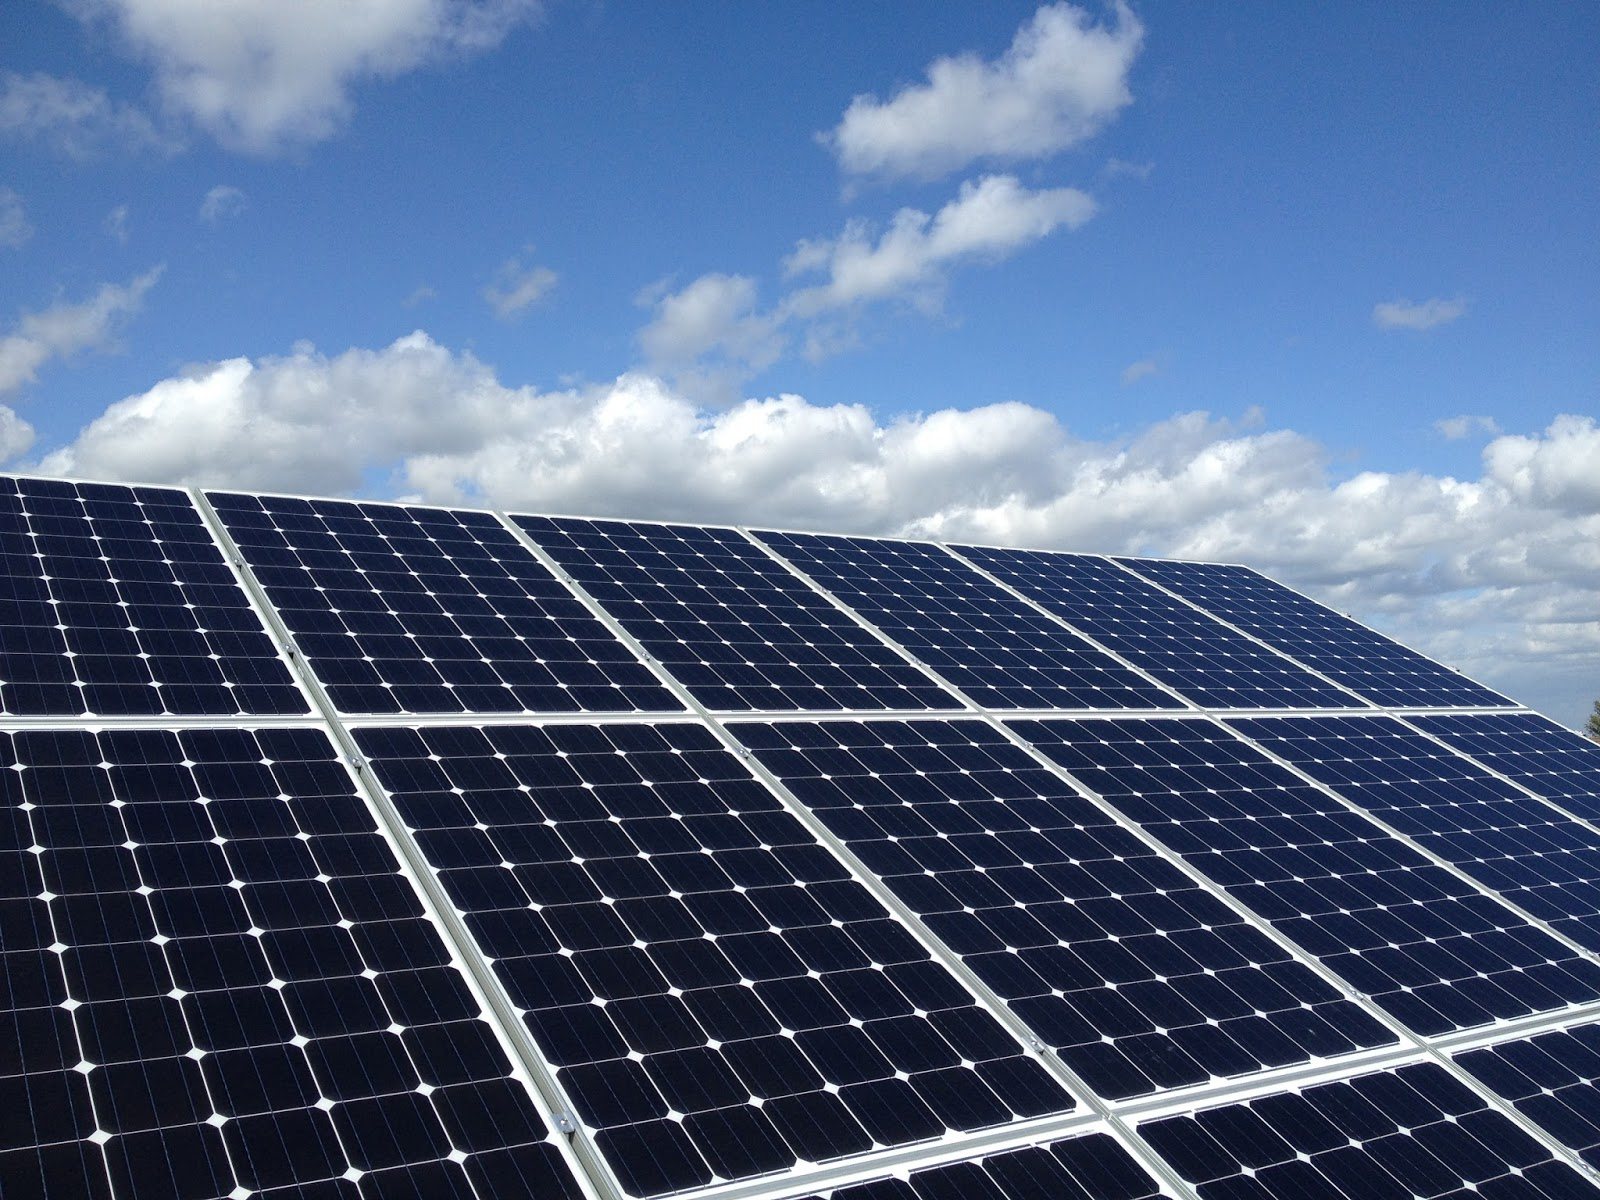 Solar Panels Wallpaper Made Solar pv a Worthwhile 1600x1200